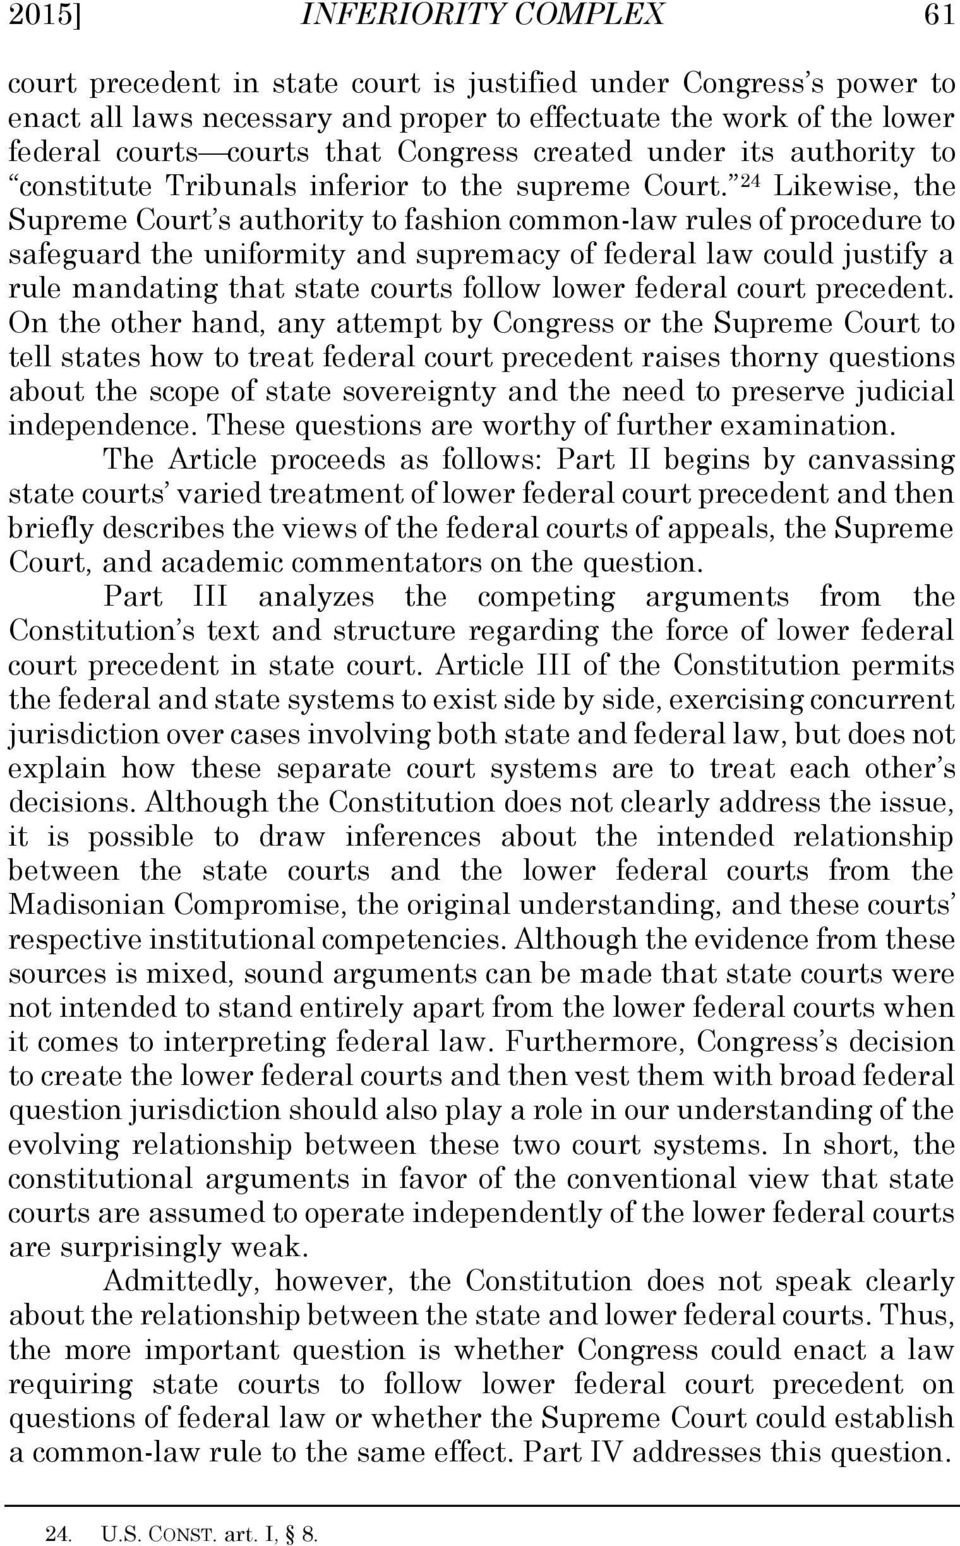 24 Likewise, the Supreme Court s authority to fashion common-law rules of procedure to safeguard the uniformity and supremacy of federal law could justify a rule mandating that state courts follow